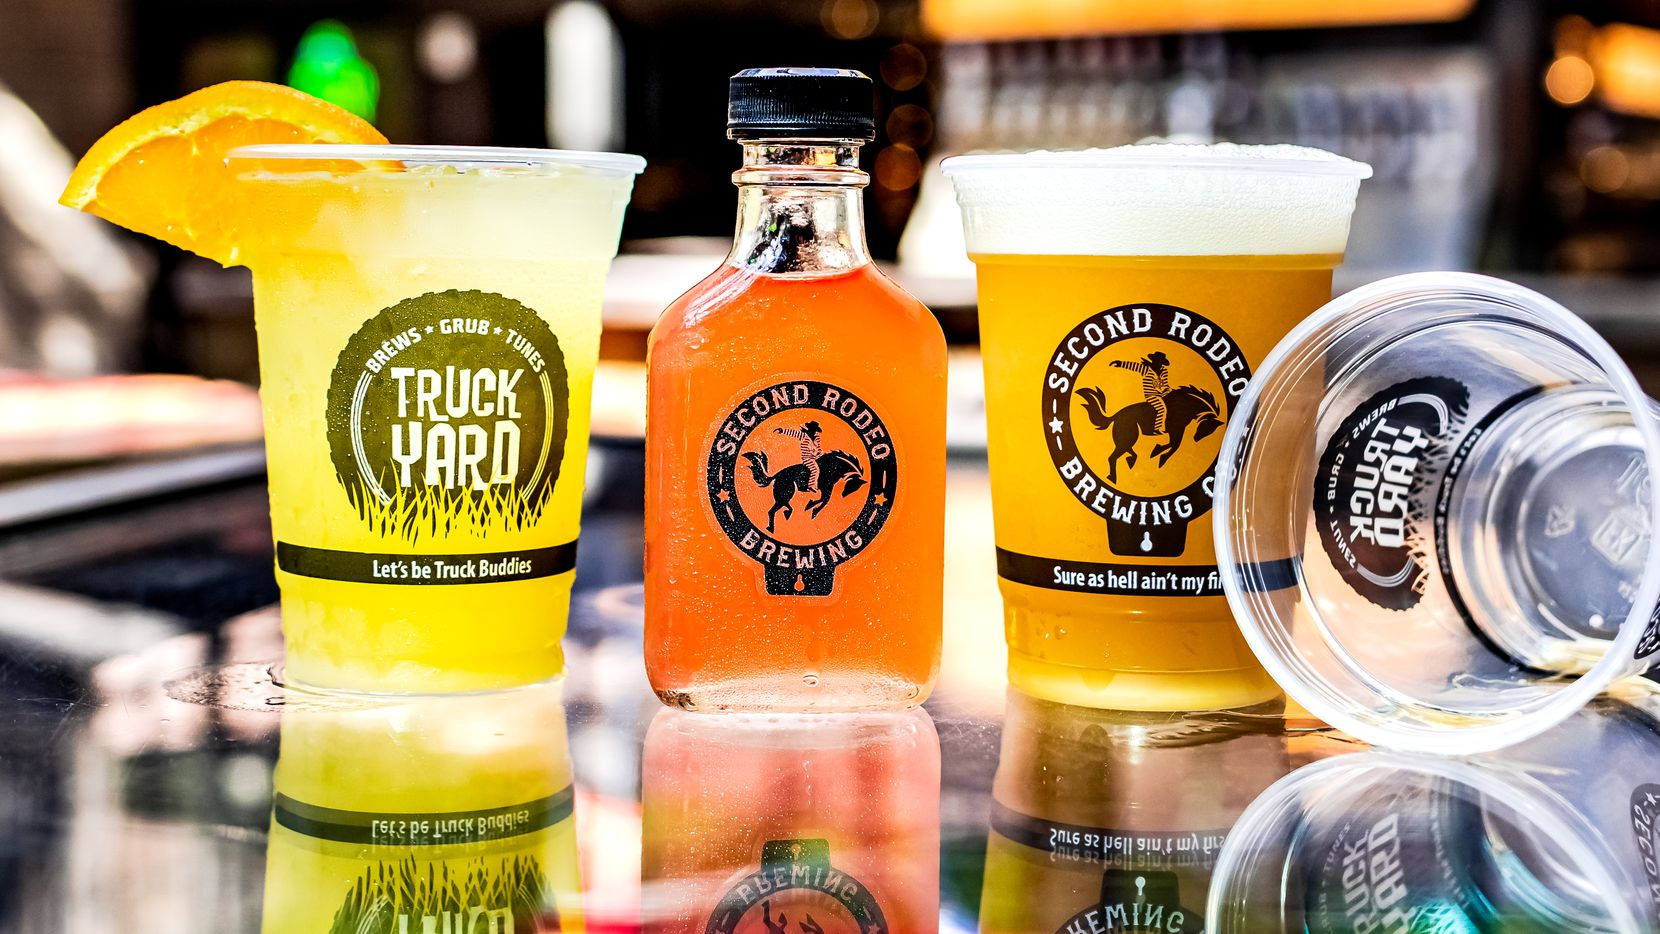 Second Rodeo Brewing is serving up craft cocktails on draft, bottled cocktails and of course their beer rotation led by Brew Boss, Dennis Wehrmann.